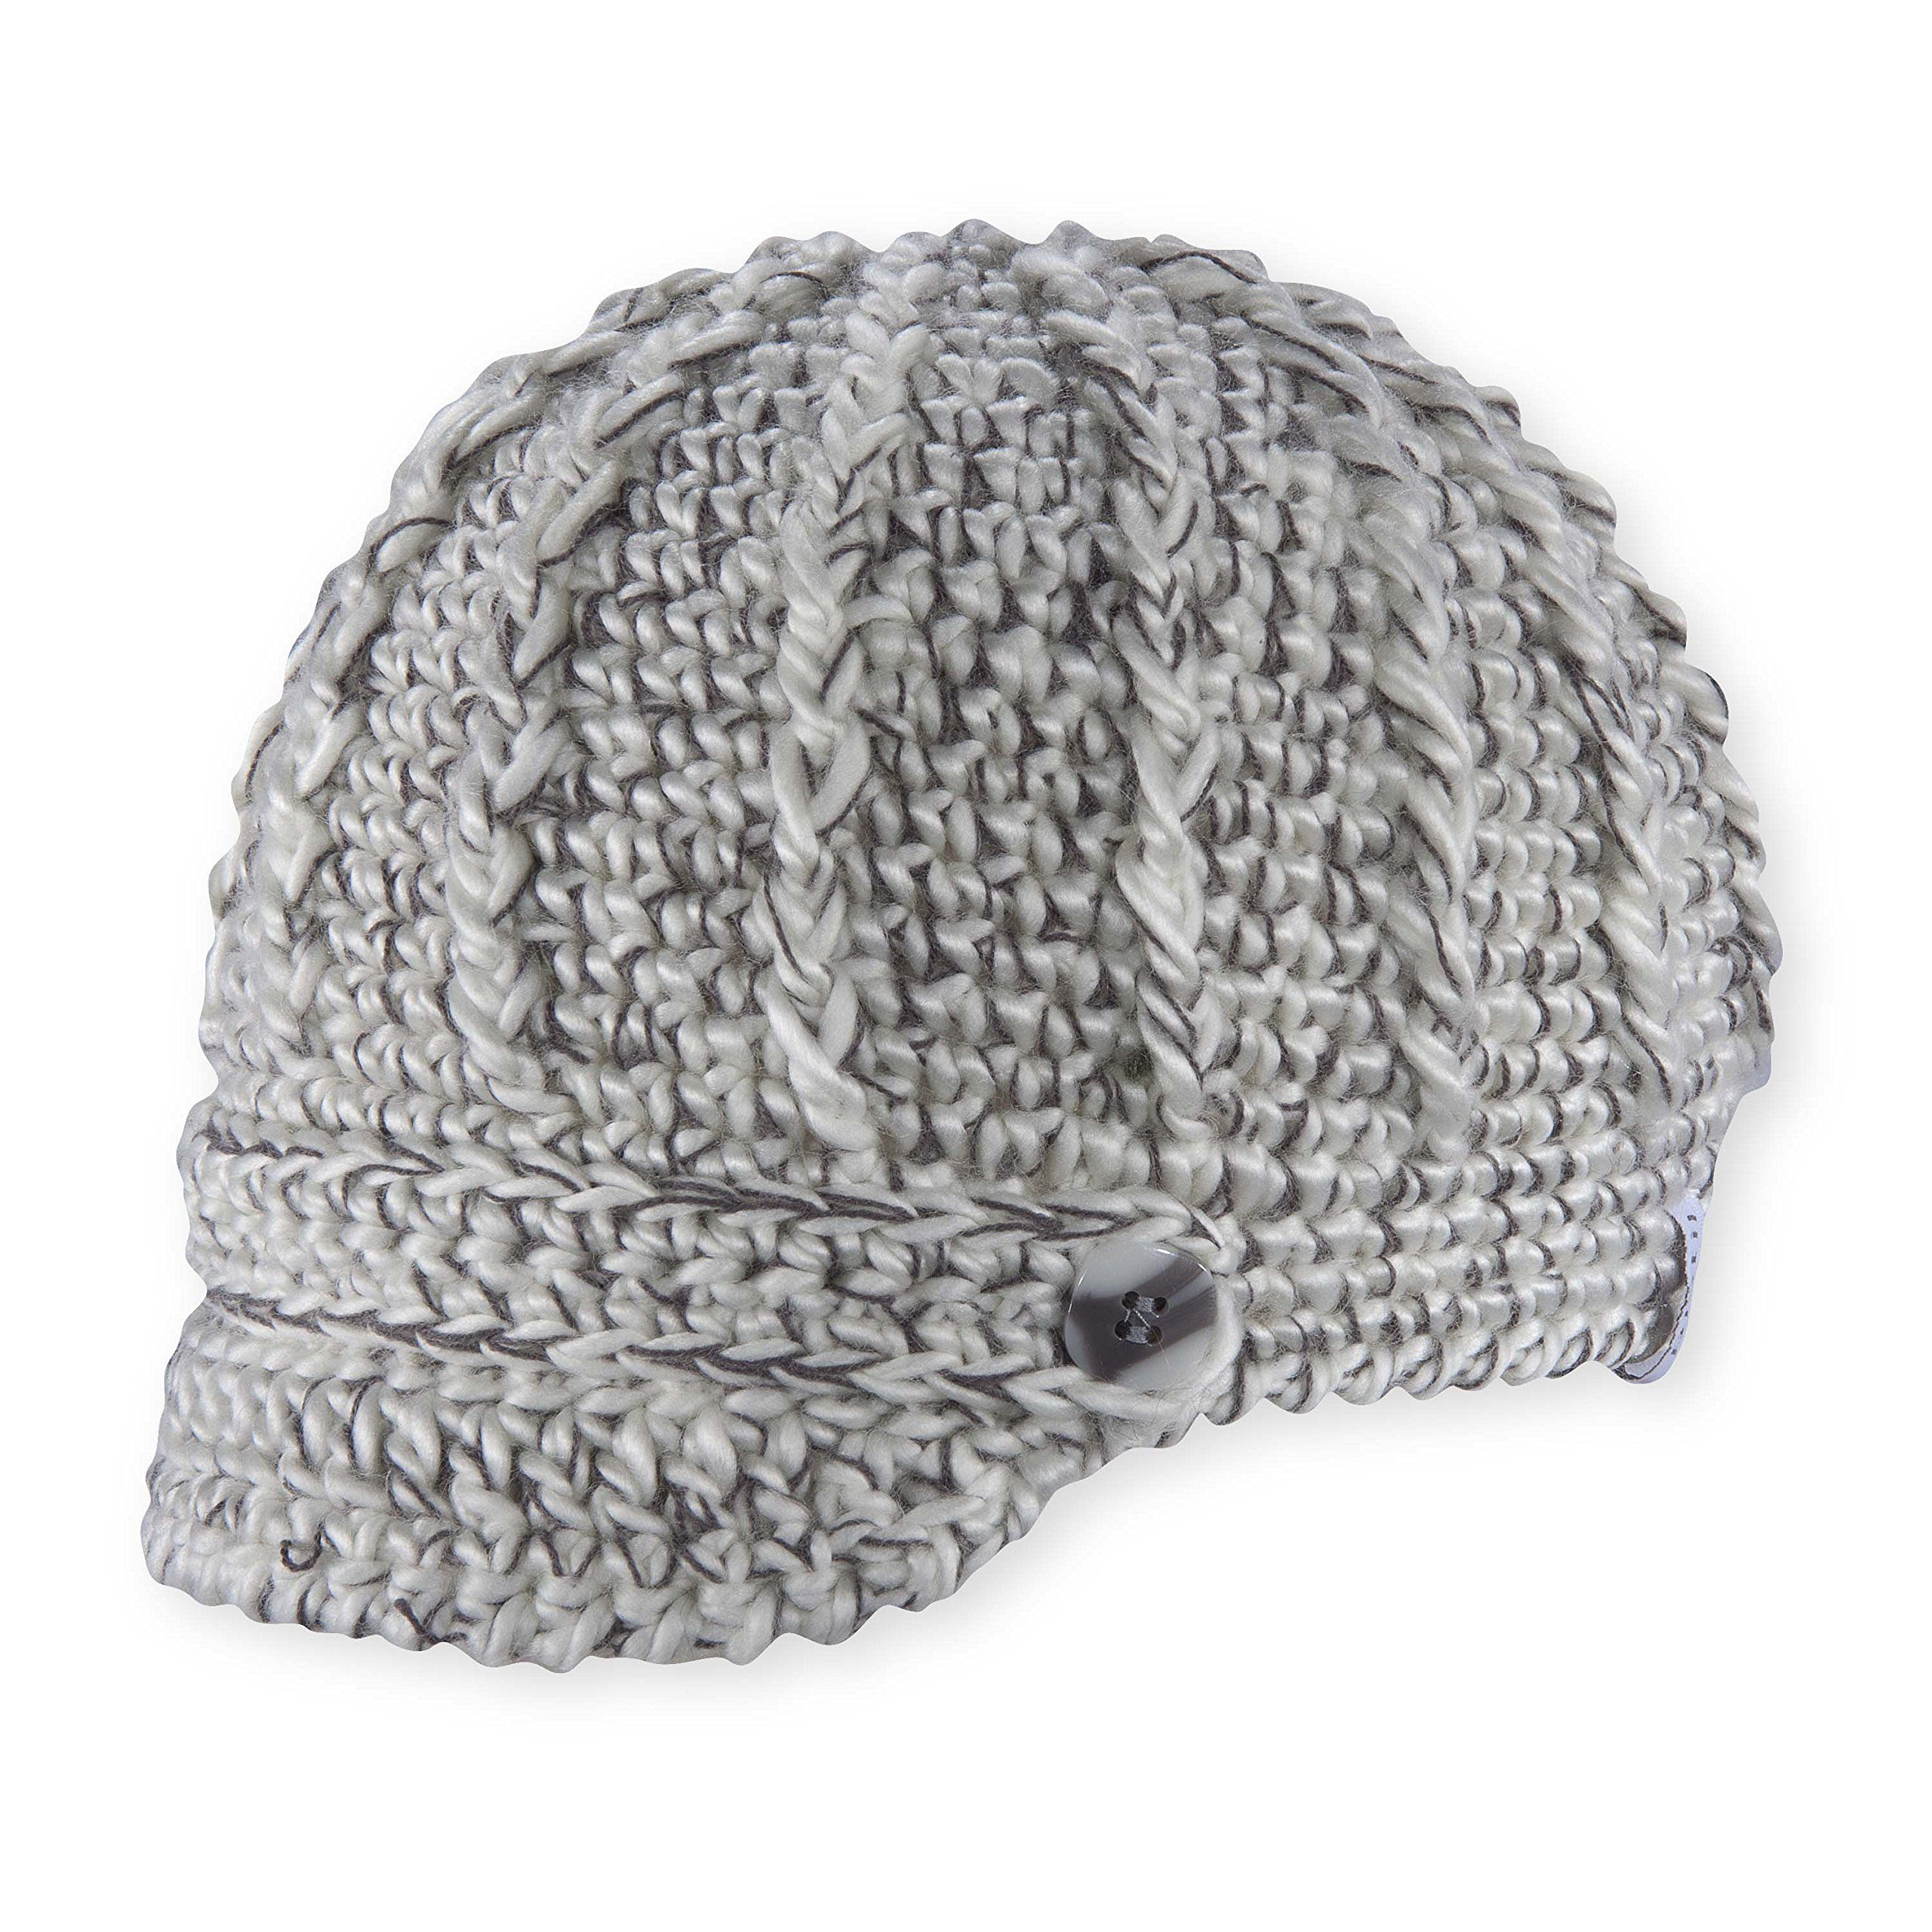 99822a30dfd Pistil Women s Clara Knit Brimmed Beanie Hat. Soft chunky yarn with  contrast threads. Hand